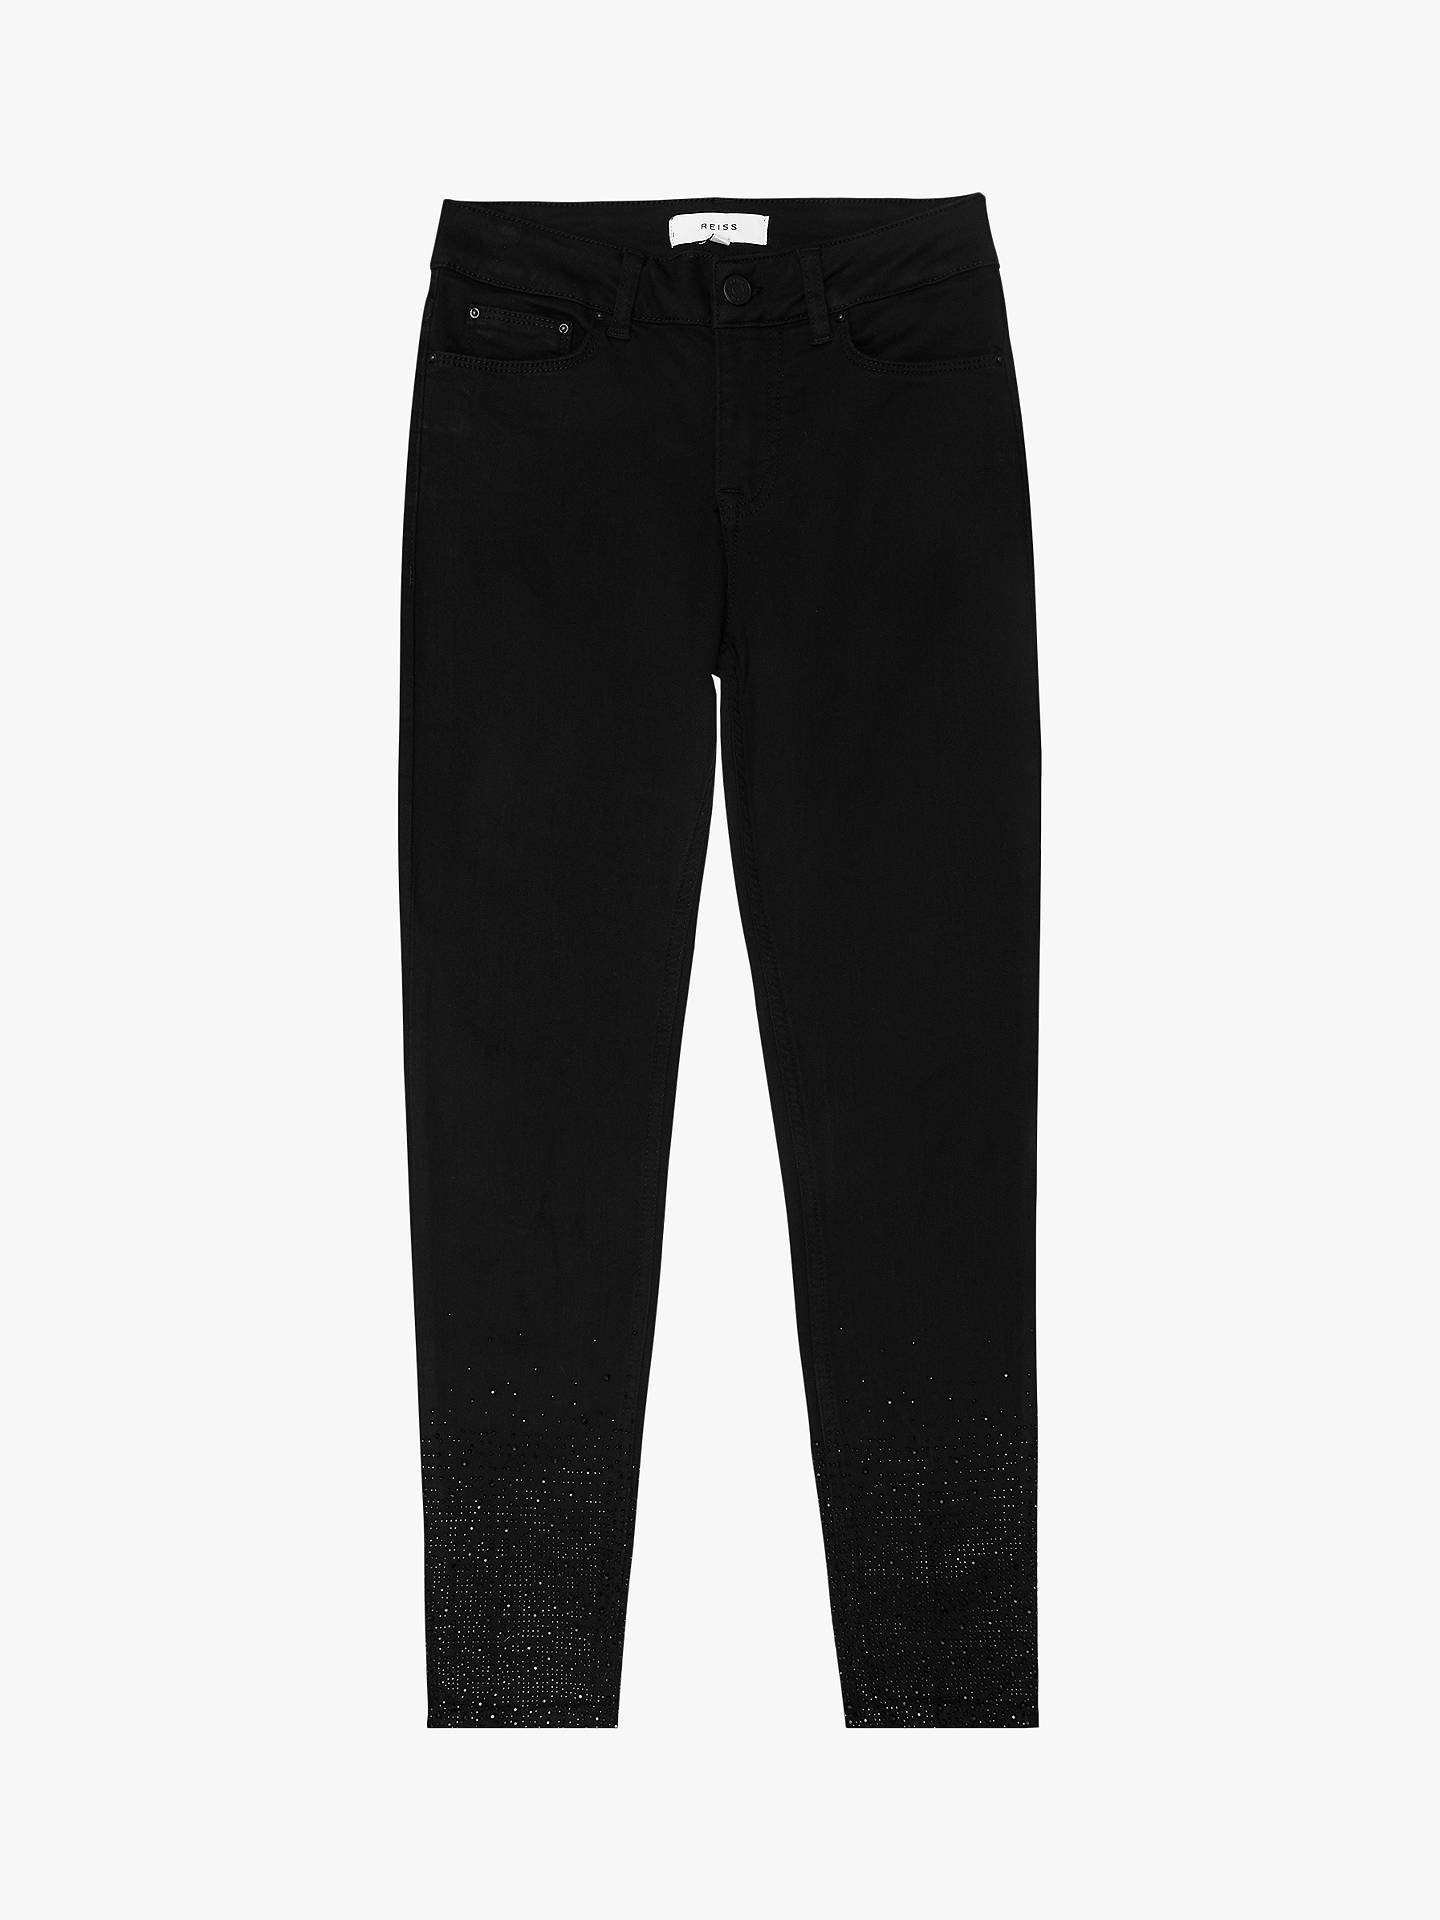 Buy Reiss Lux Embellished Skinny Fit Jeans, Black, 32 Online at johnlewis.com